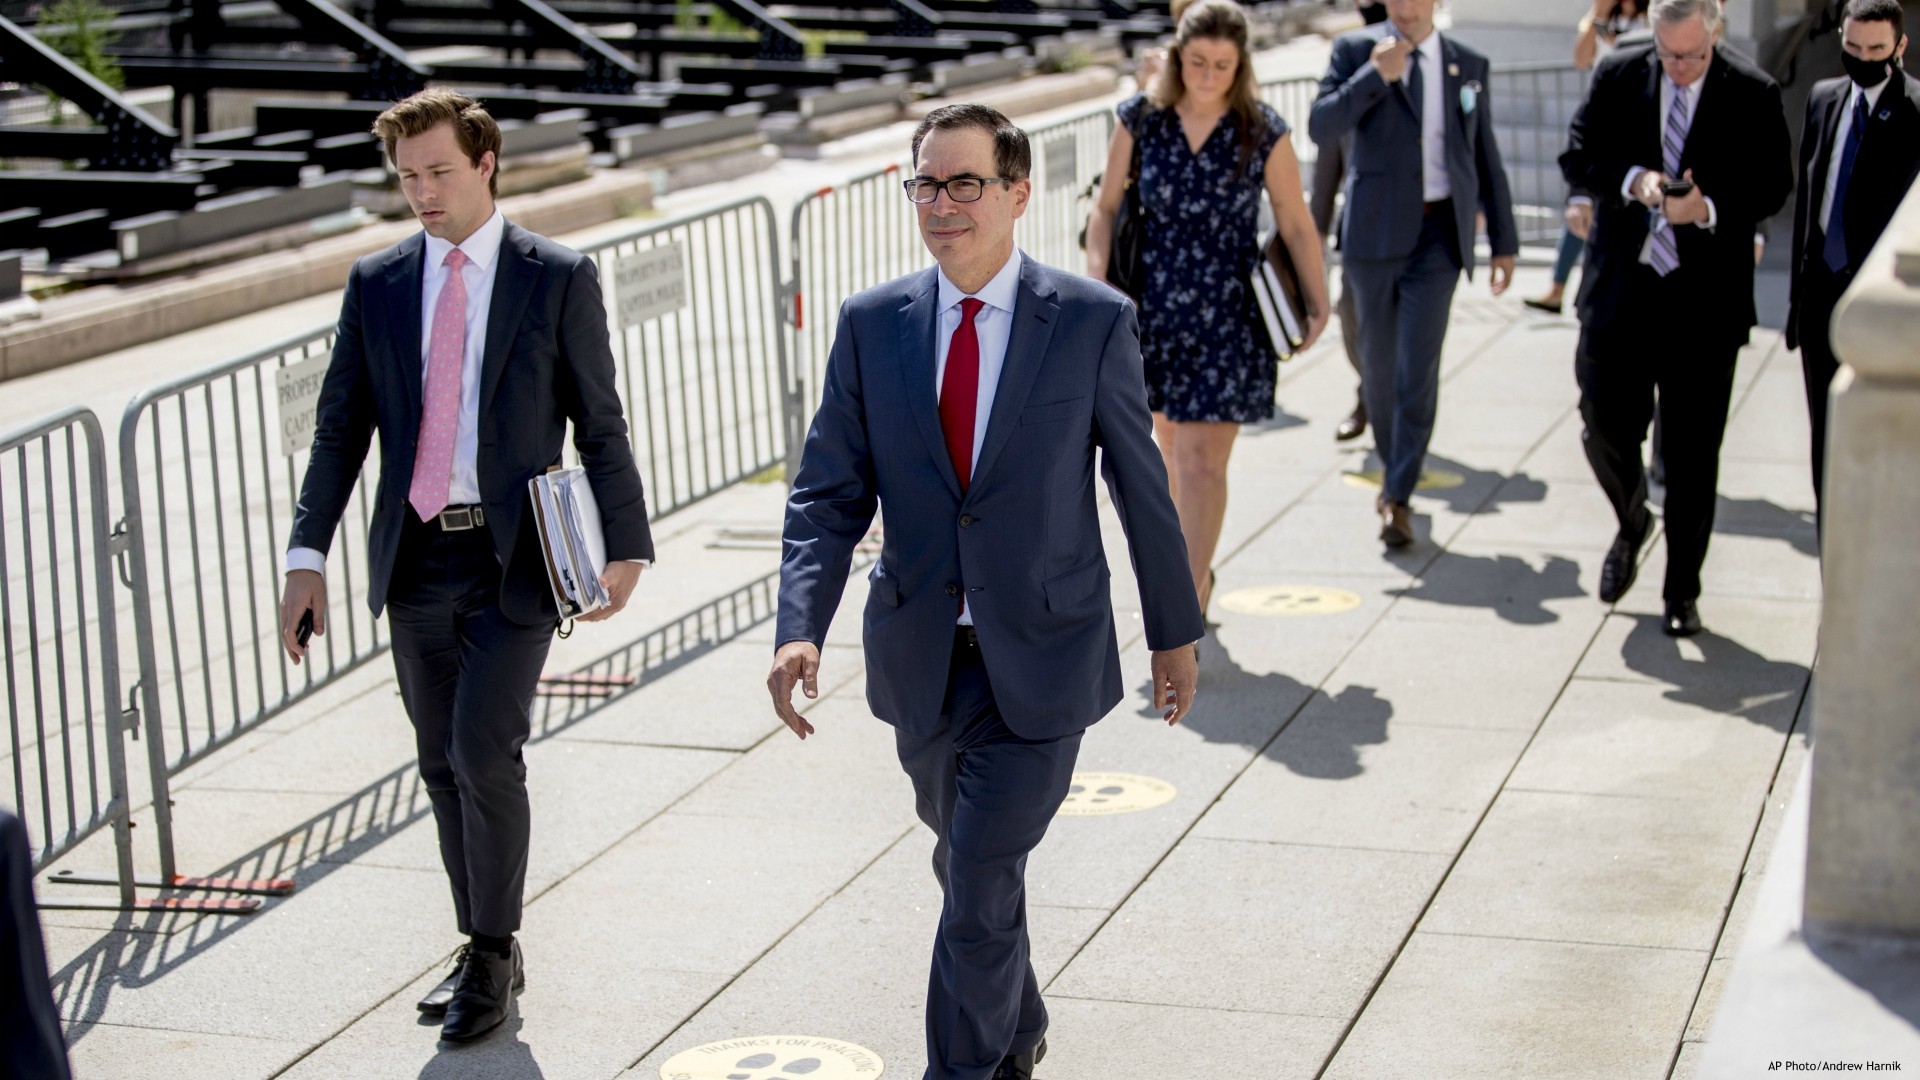 Treasury Secretary Steven Mnuchin, center, and President Donald Trump's Chief of Staff Mark Meadows, second from right, leave following a meeting with House Speaker Nancy Pelosi of Calif. and Senate Minority Leader Sen. Chuck Schumer of N.Y. as they continue to negotiate a coronavirus relief package on Capitol Hill in Washington, Friday, Aug. 7, 2020. (AP Photo/Andrew Harnik)